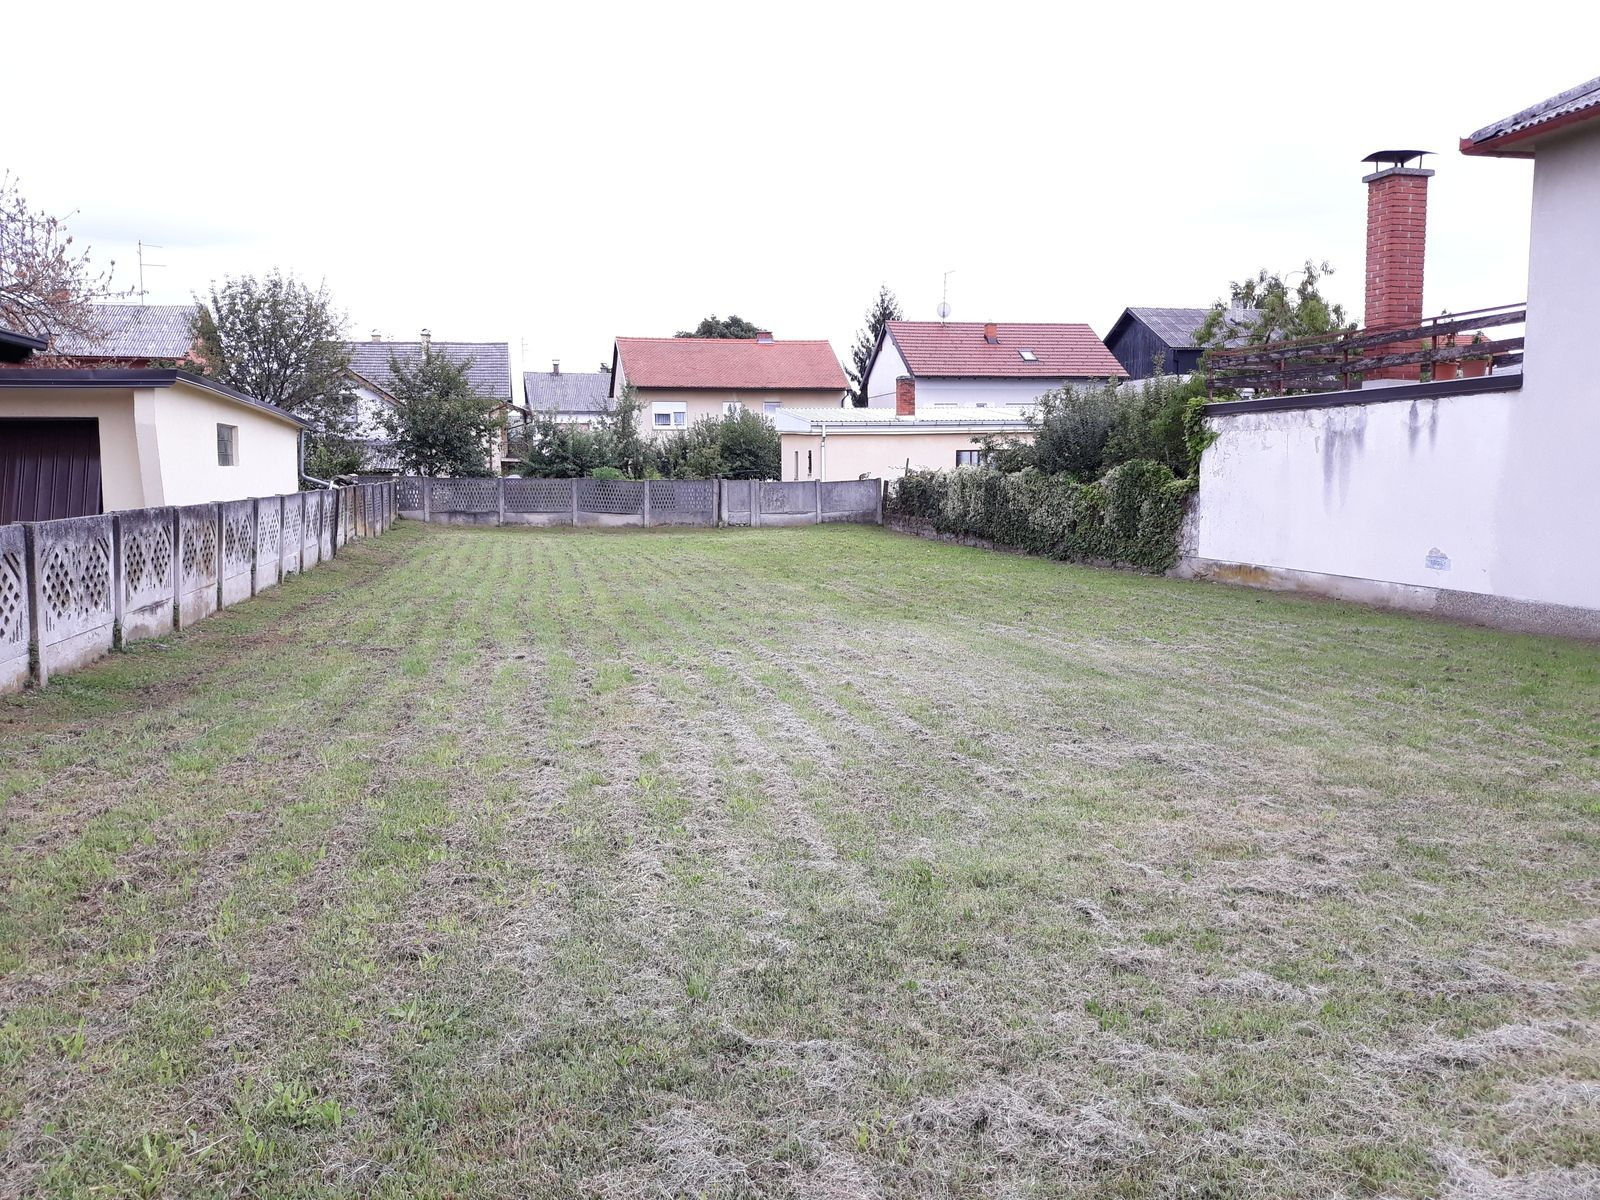 Plot for construction, Sale, Varaždin, Varaždin